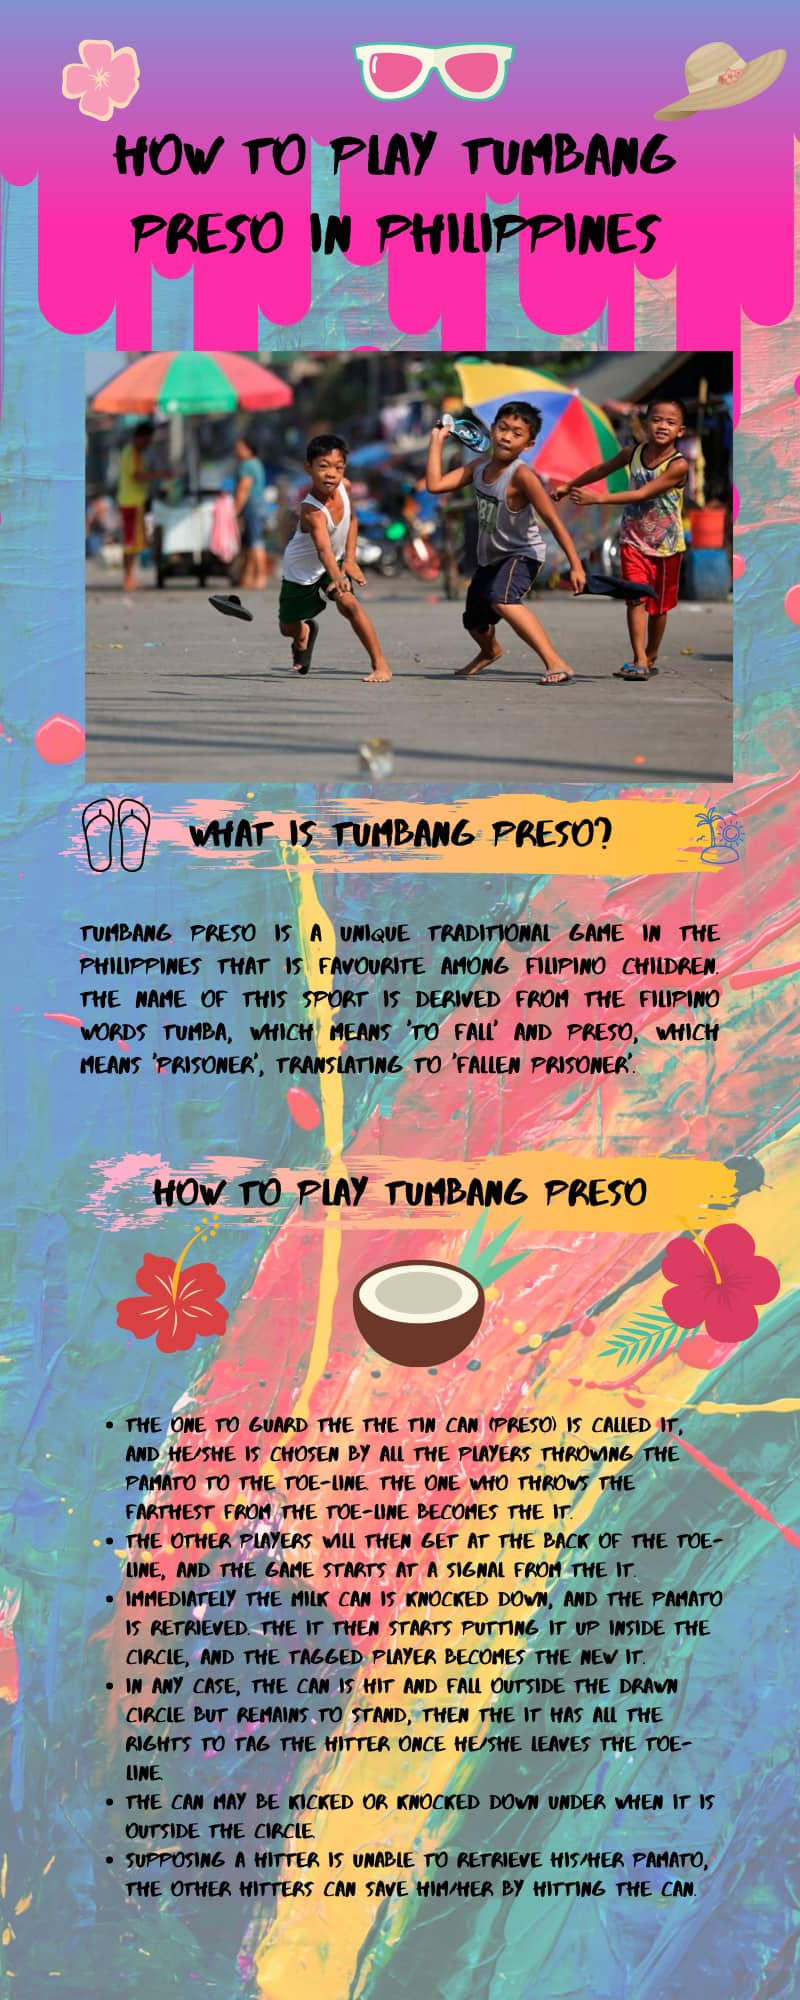 How to play Tumbang Preso in Philippines